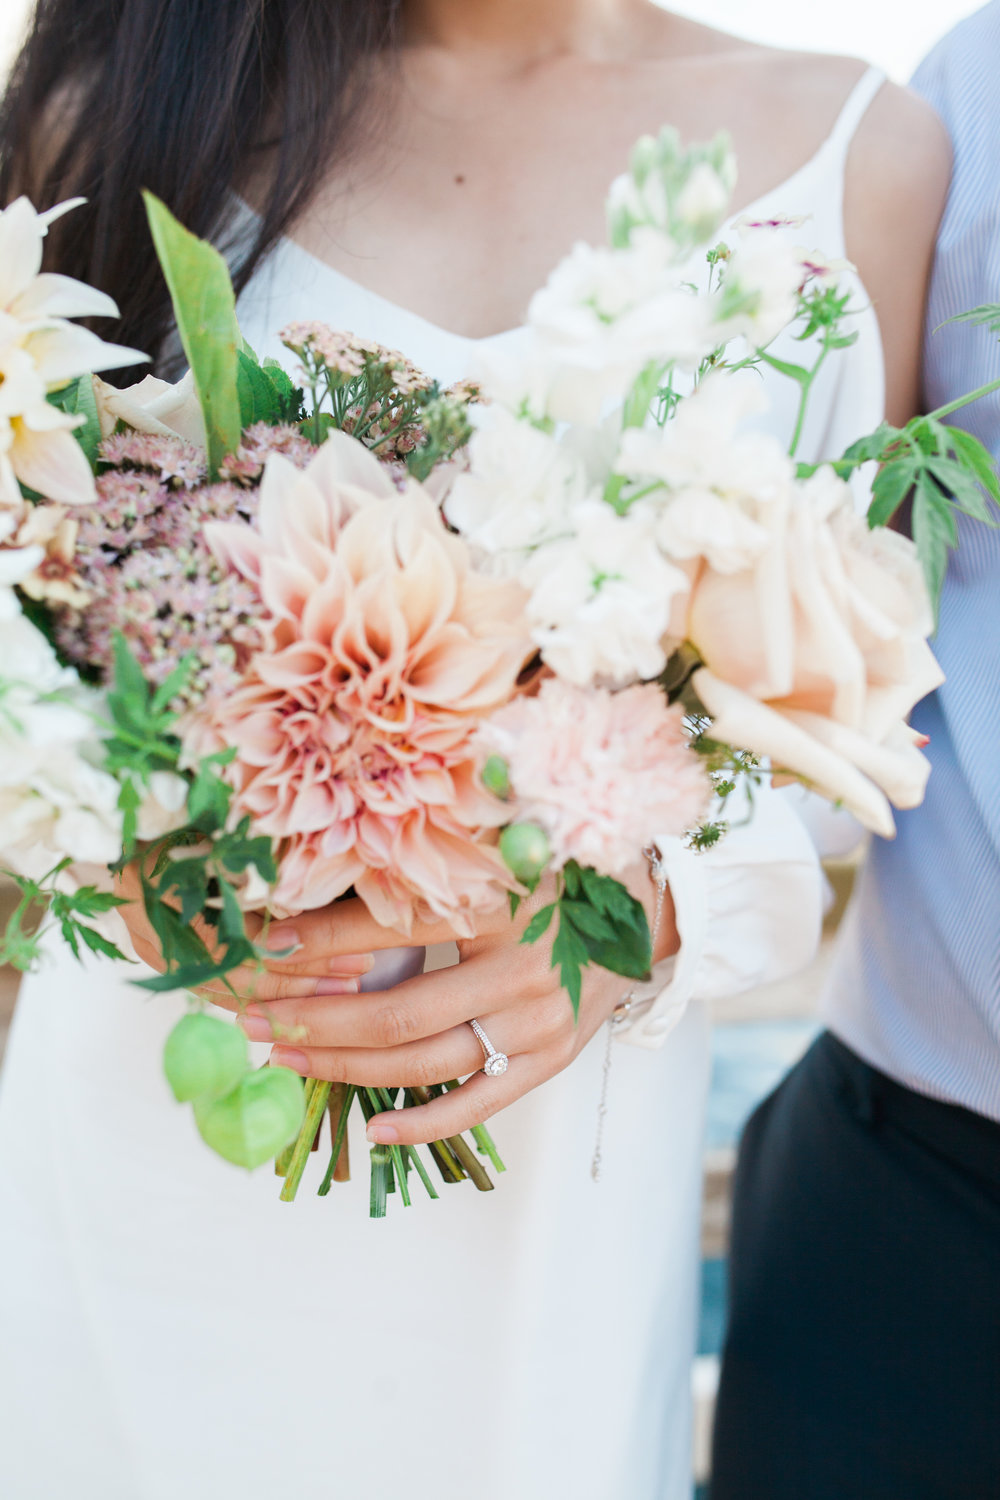 Engagement-bouquet-held-by-girl